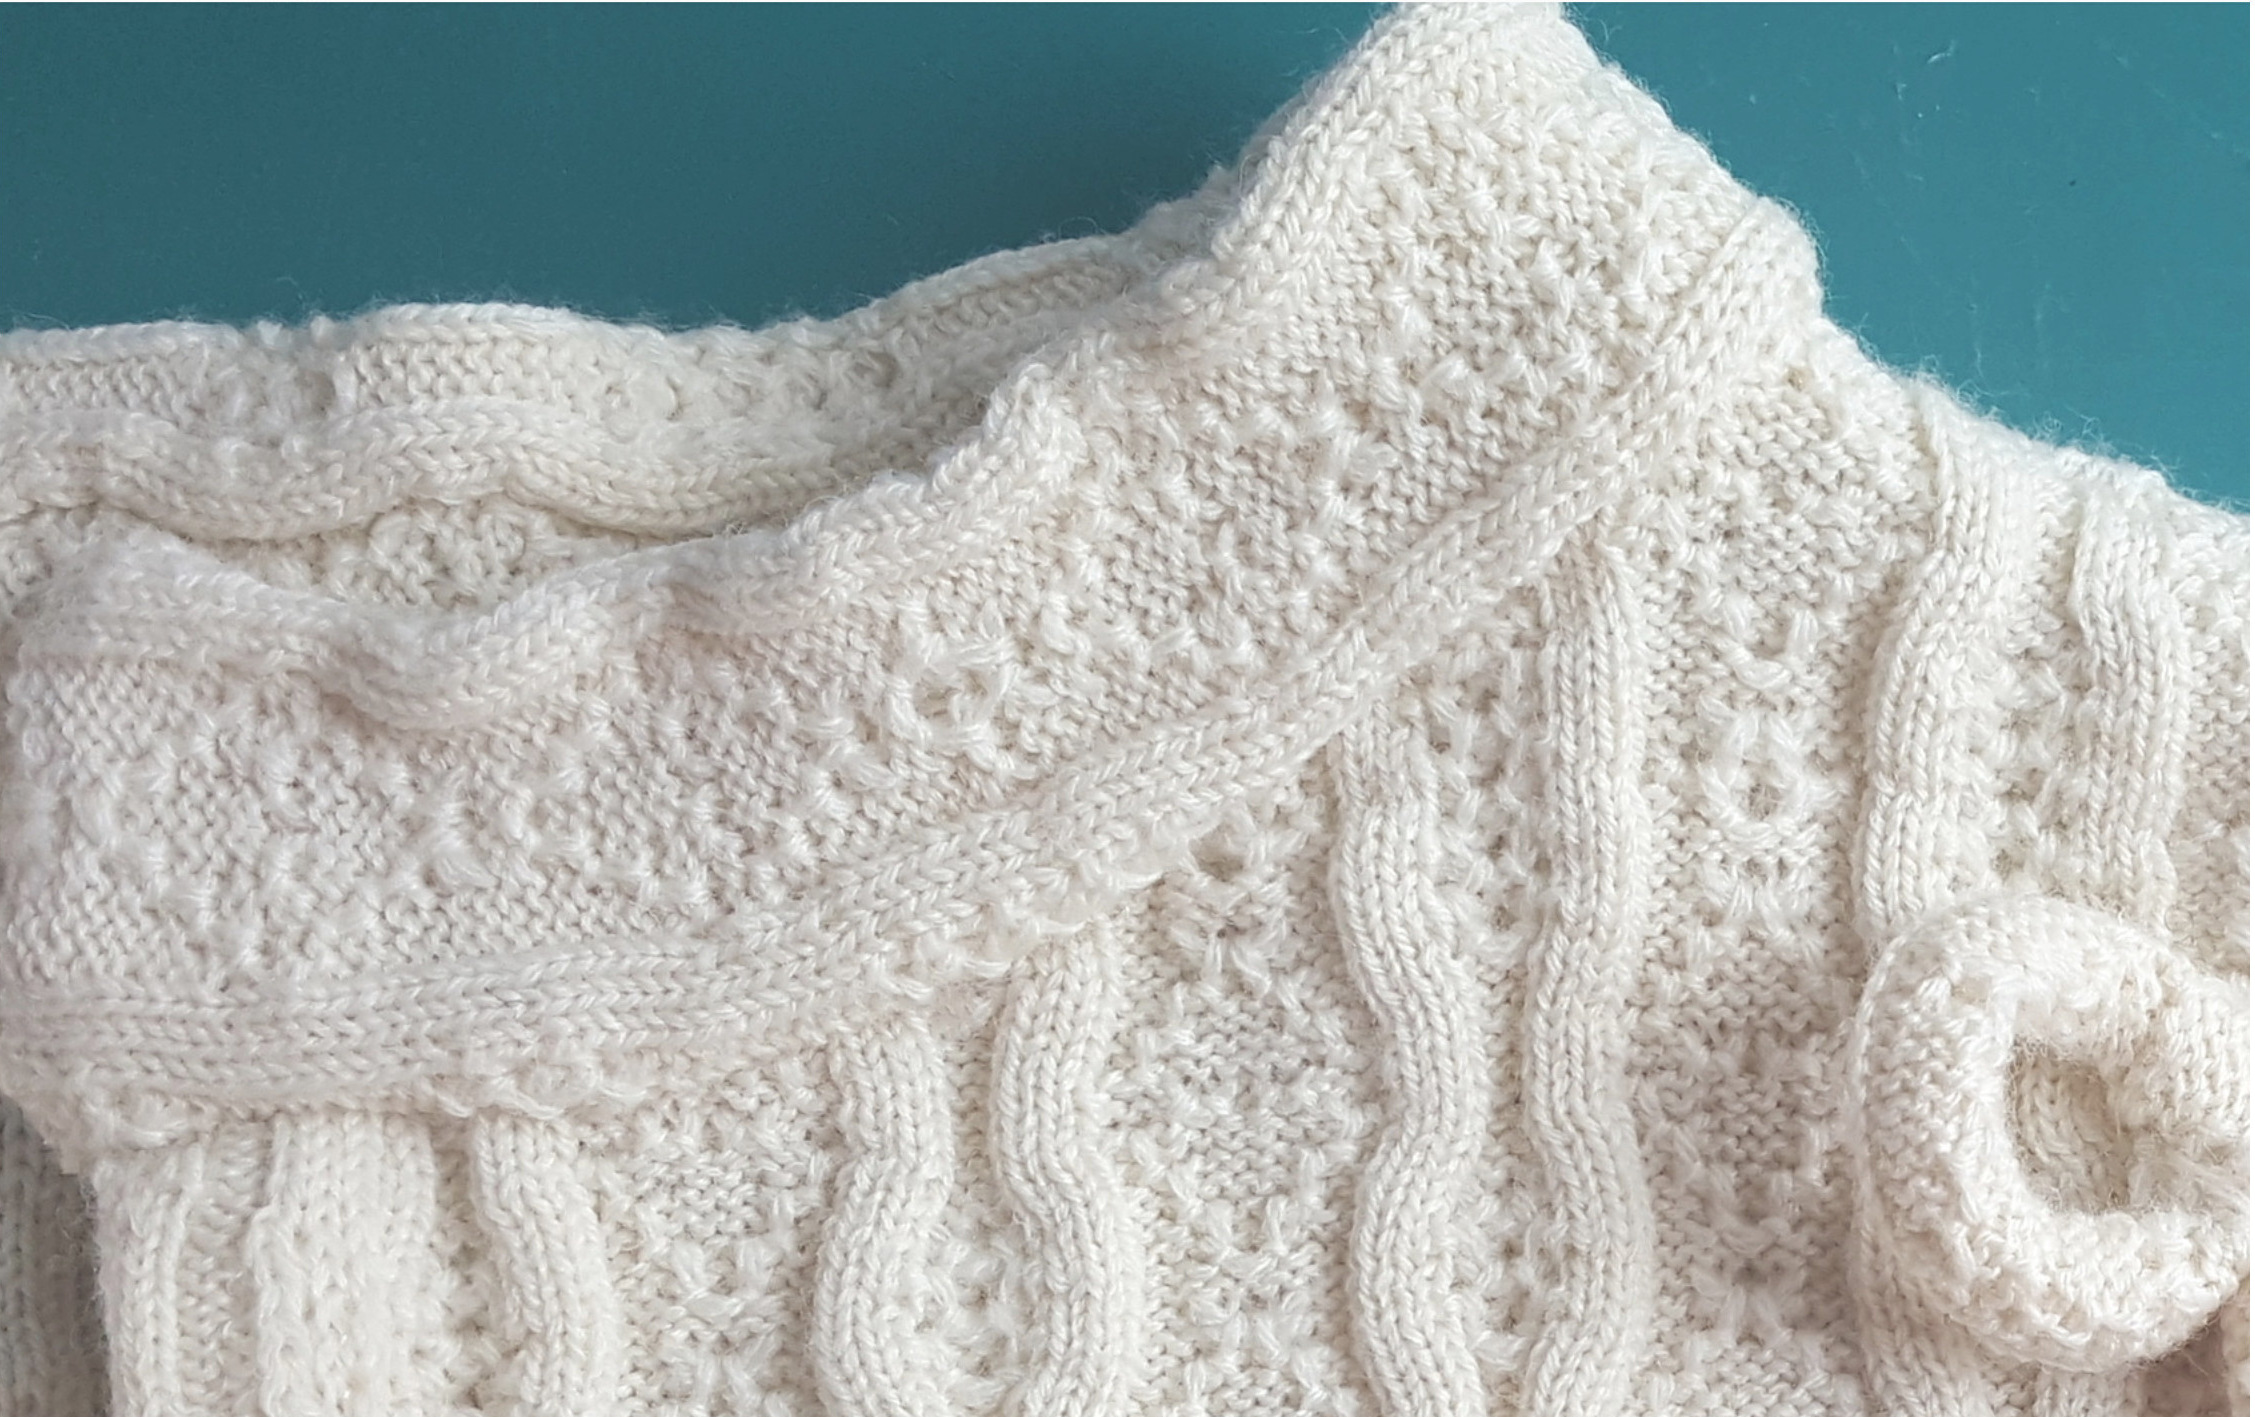 Finished novelty neckline of cream colored cardigan sweater